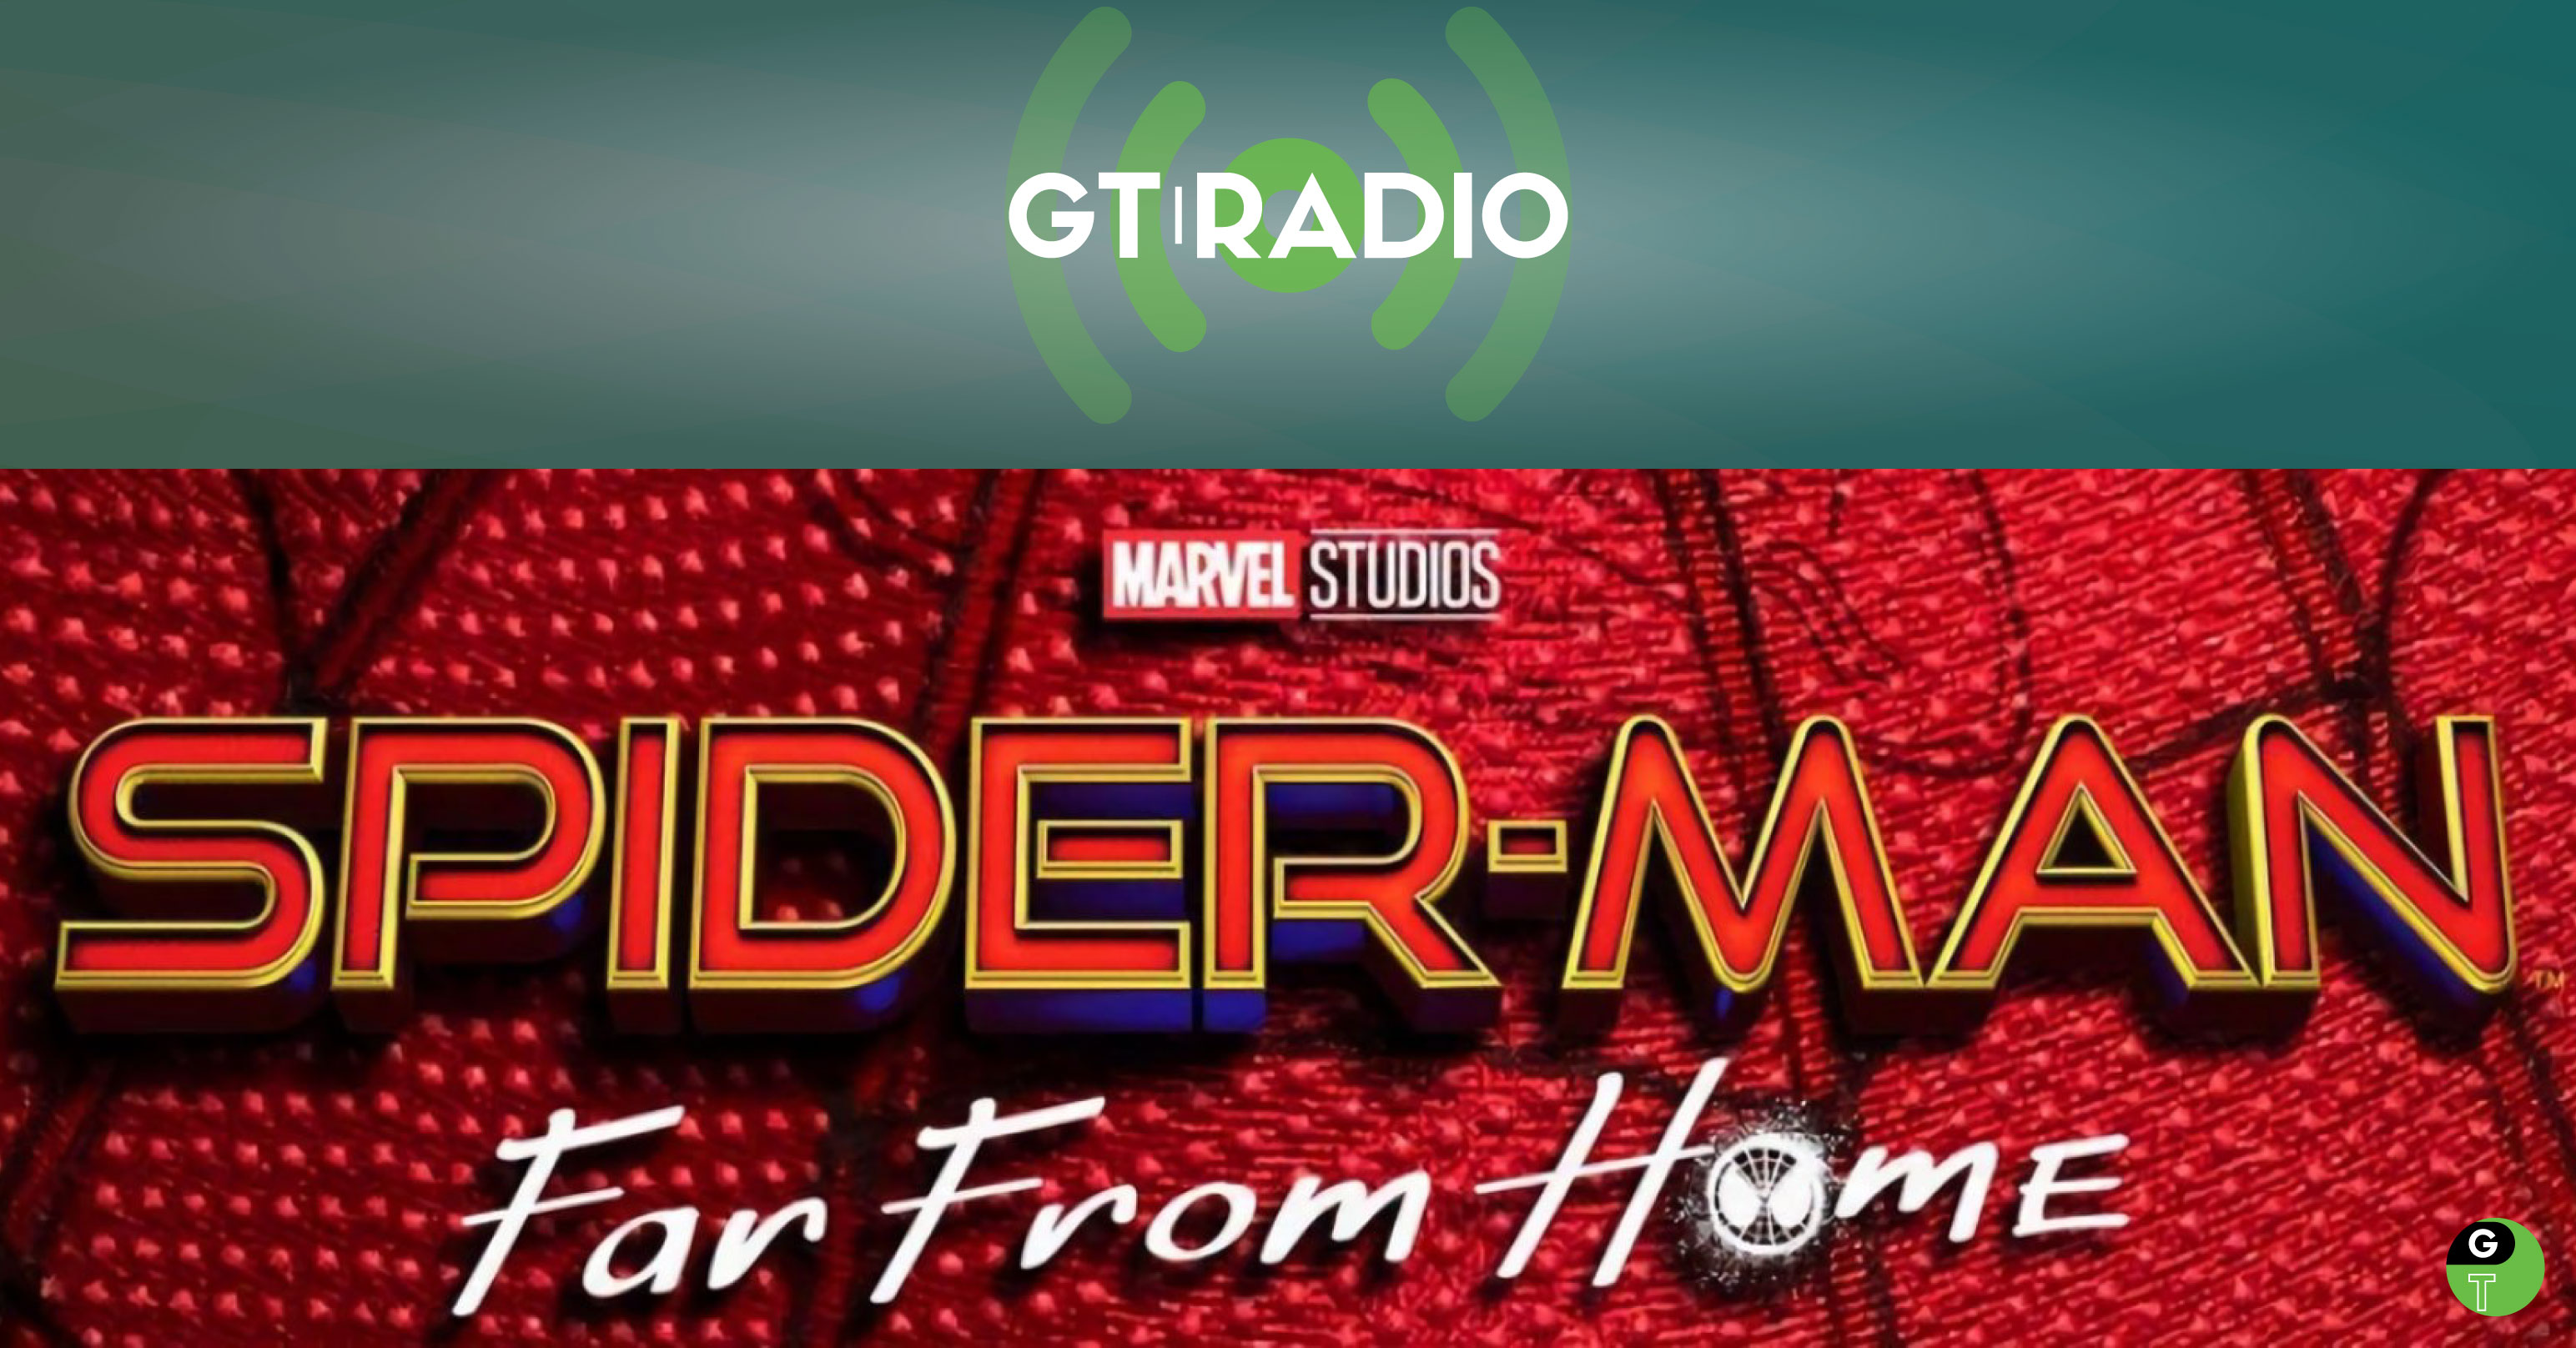 Spider-Man Far From Home GT Radio